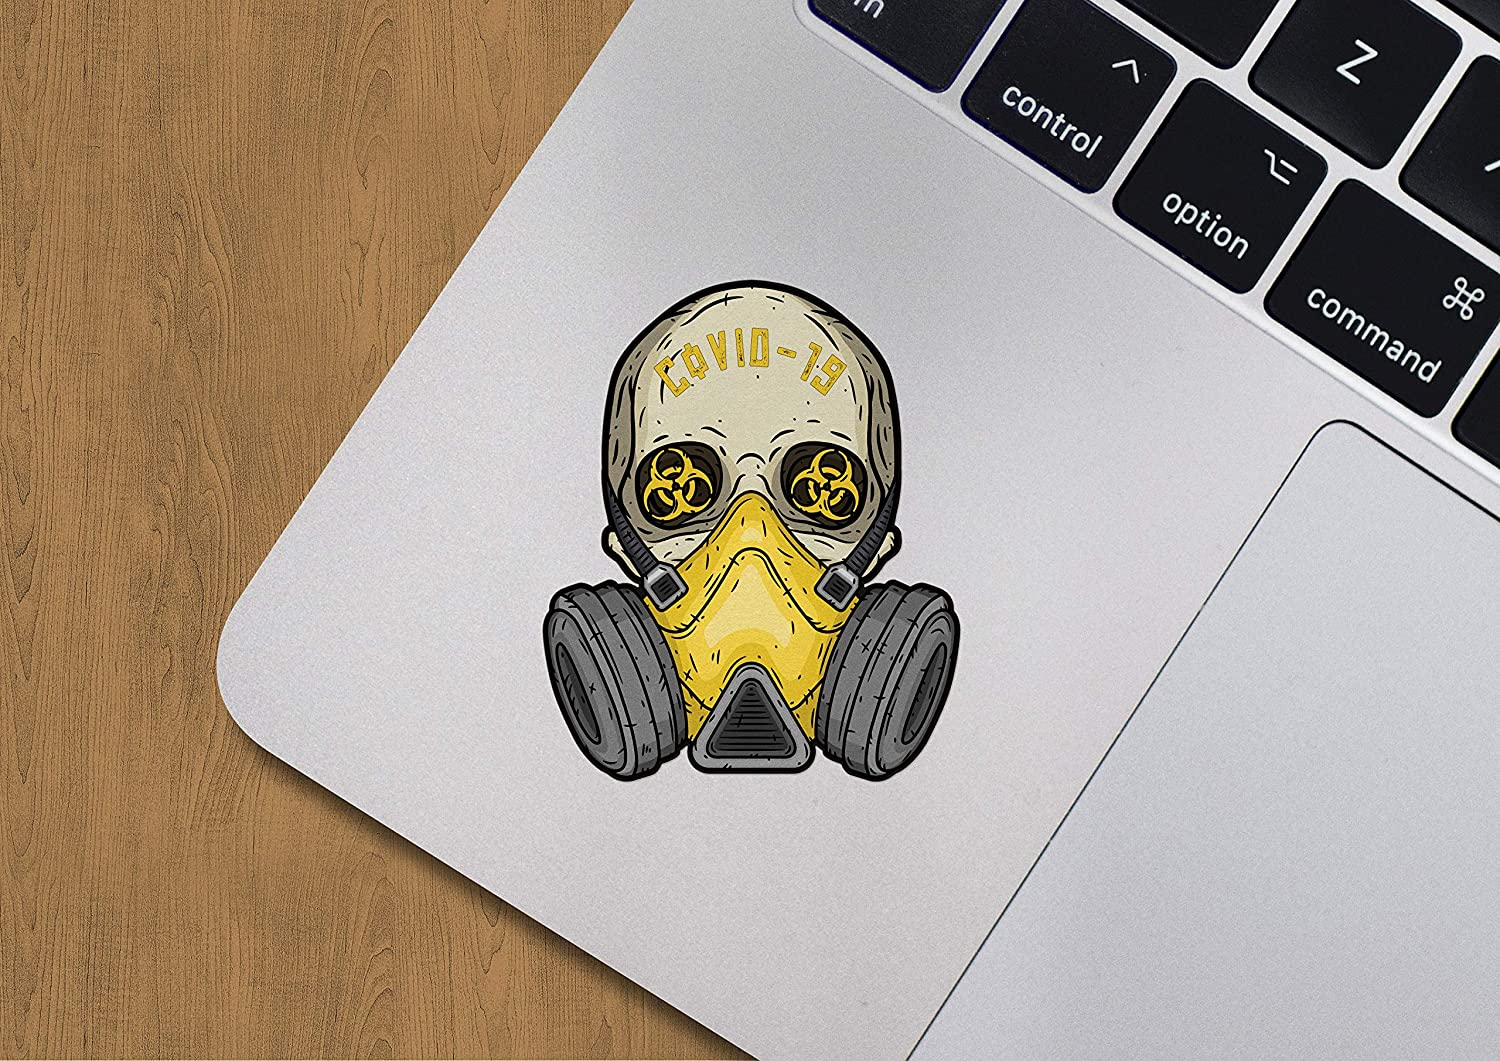 Pro-Graphx Coronavirus COVID-19 Vinyl Stickers for Laptop Car Truck Window Bumper Decor Notebook - Quarantine Self Isolation Logo Vinyl Decals Bumper Graphic Cartoon (1-Pack)